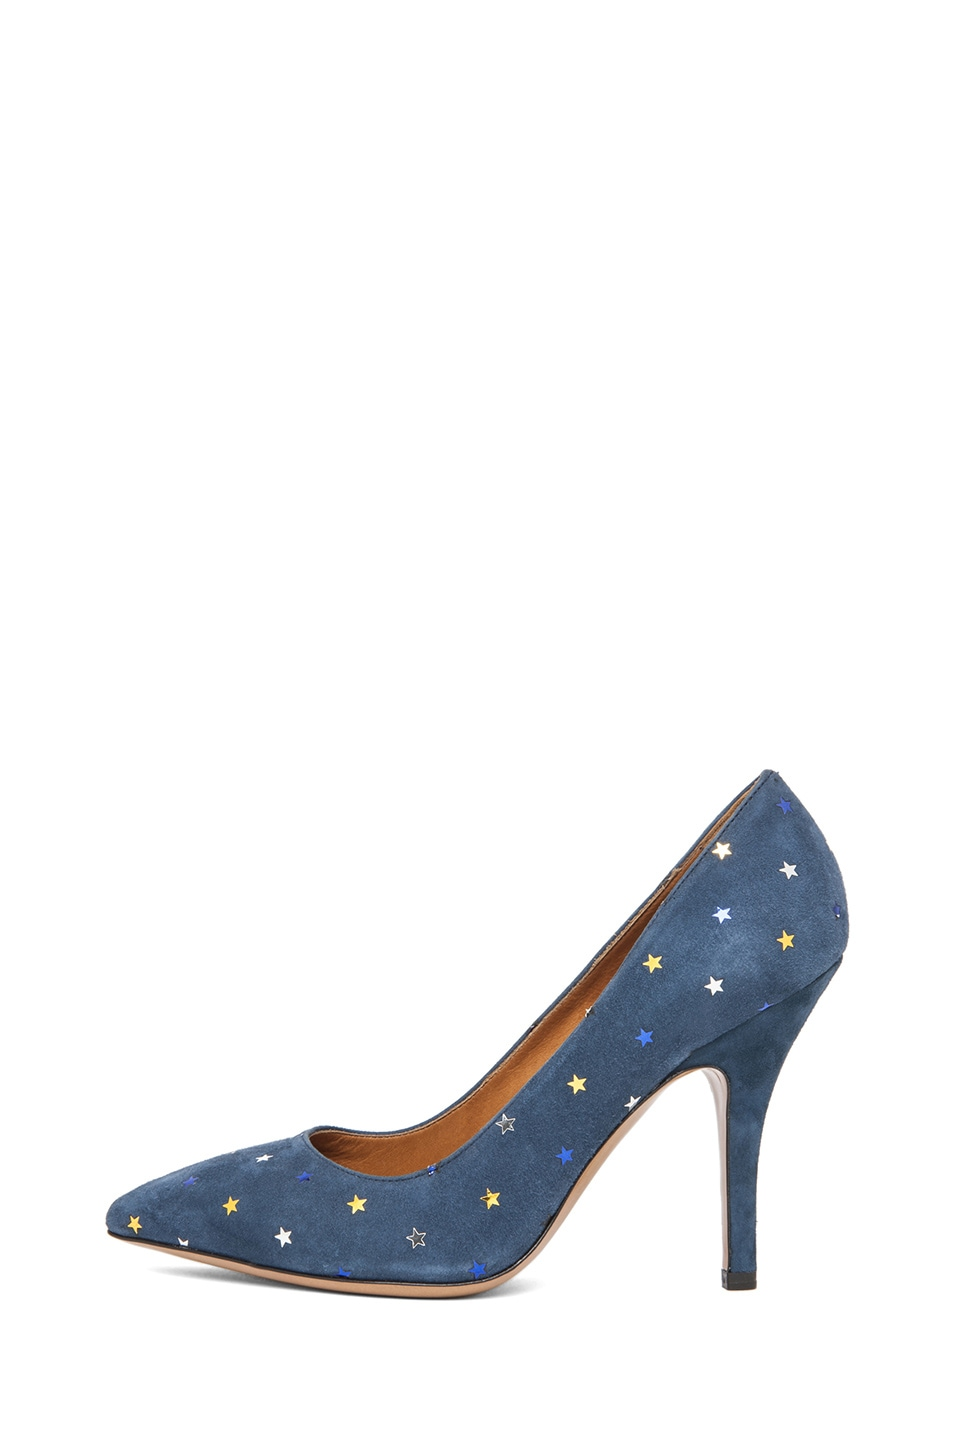 Image 1 of Isabel Marant Anaid Suede Star Pumps in Navy